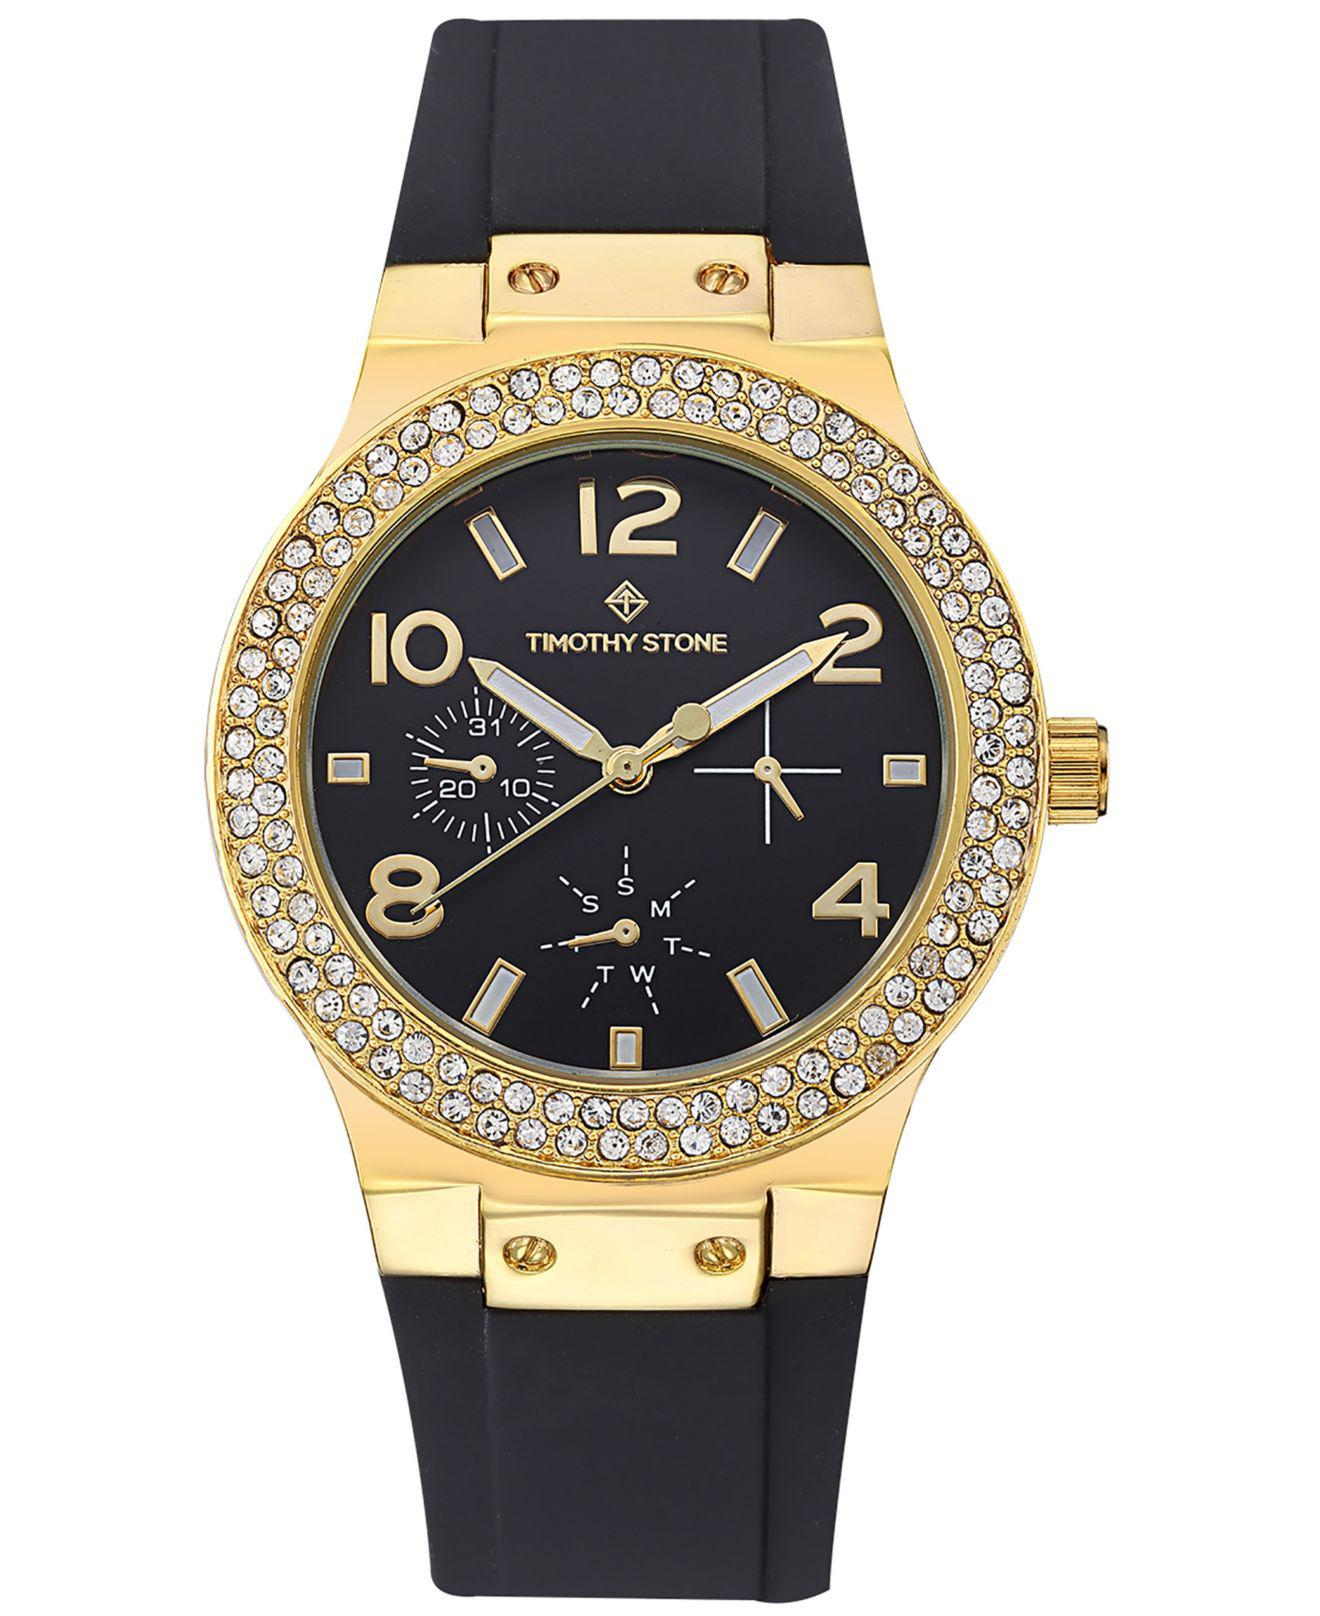 296cff87b849 ... Sporty Chic Crystal Accented Silicone Strap Watch - Lyst. View  fullscreen